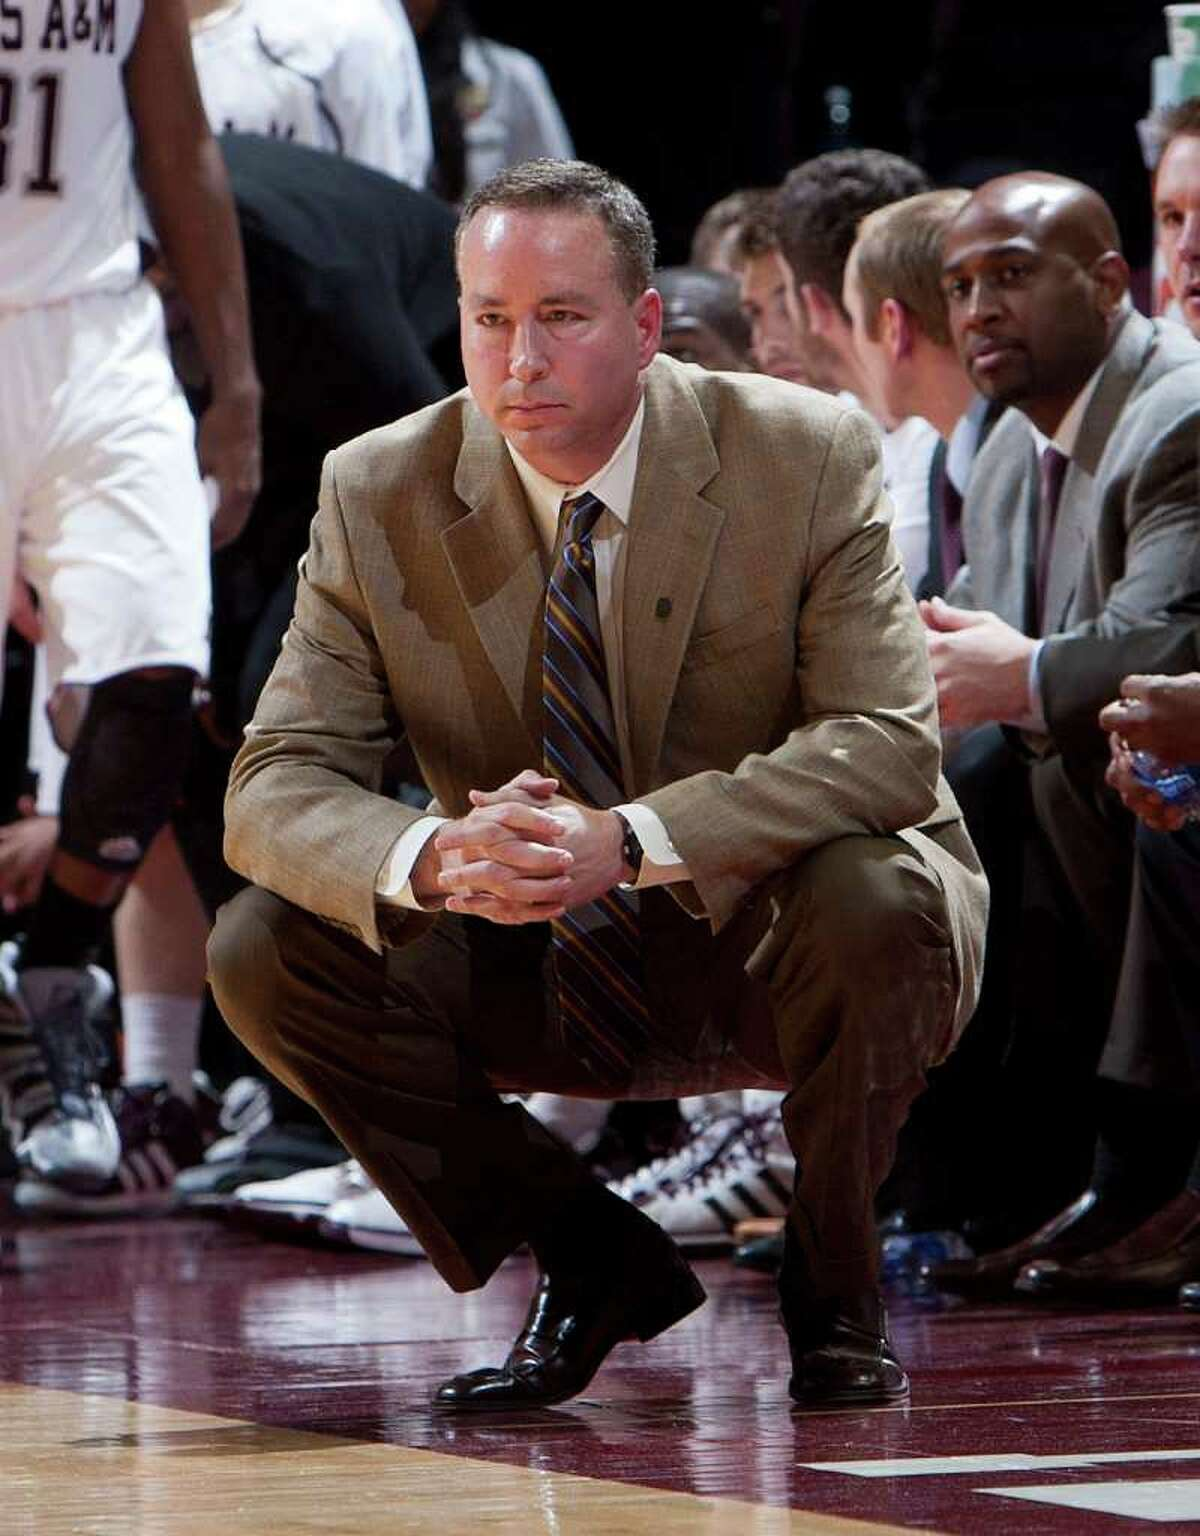 Texas A&M coach Billy Kennedy says the youthful Aggies are capable of beating quality teams. Texas A&M was a preseason favorite for the Big 12 title.